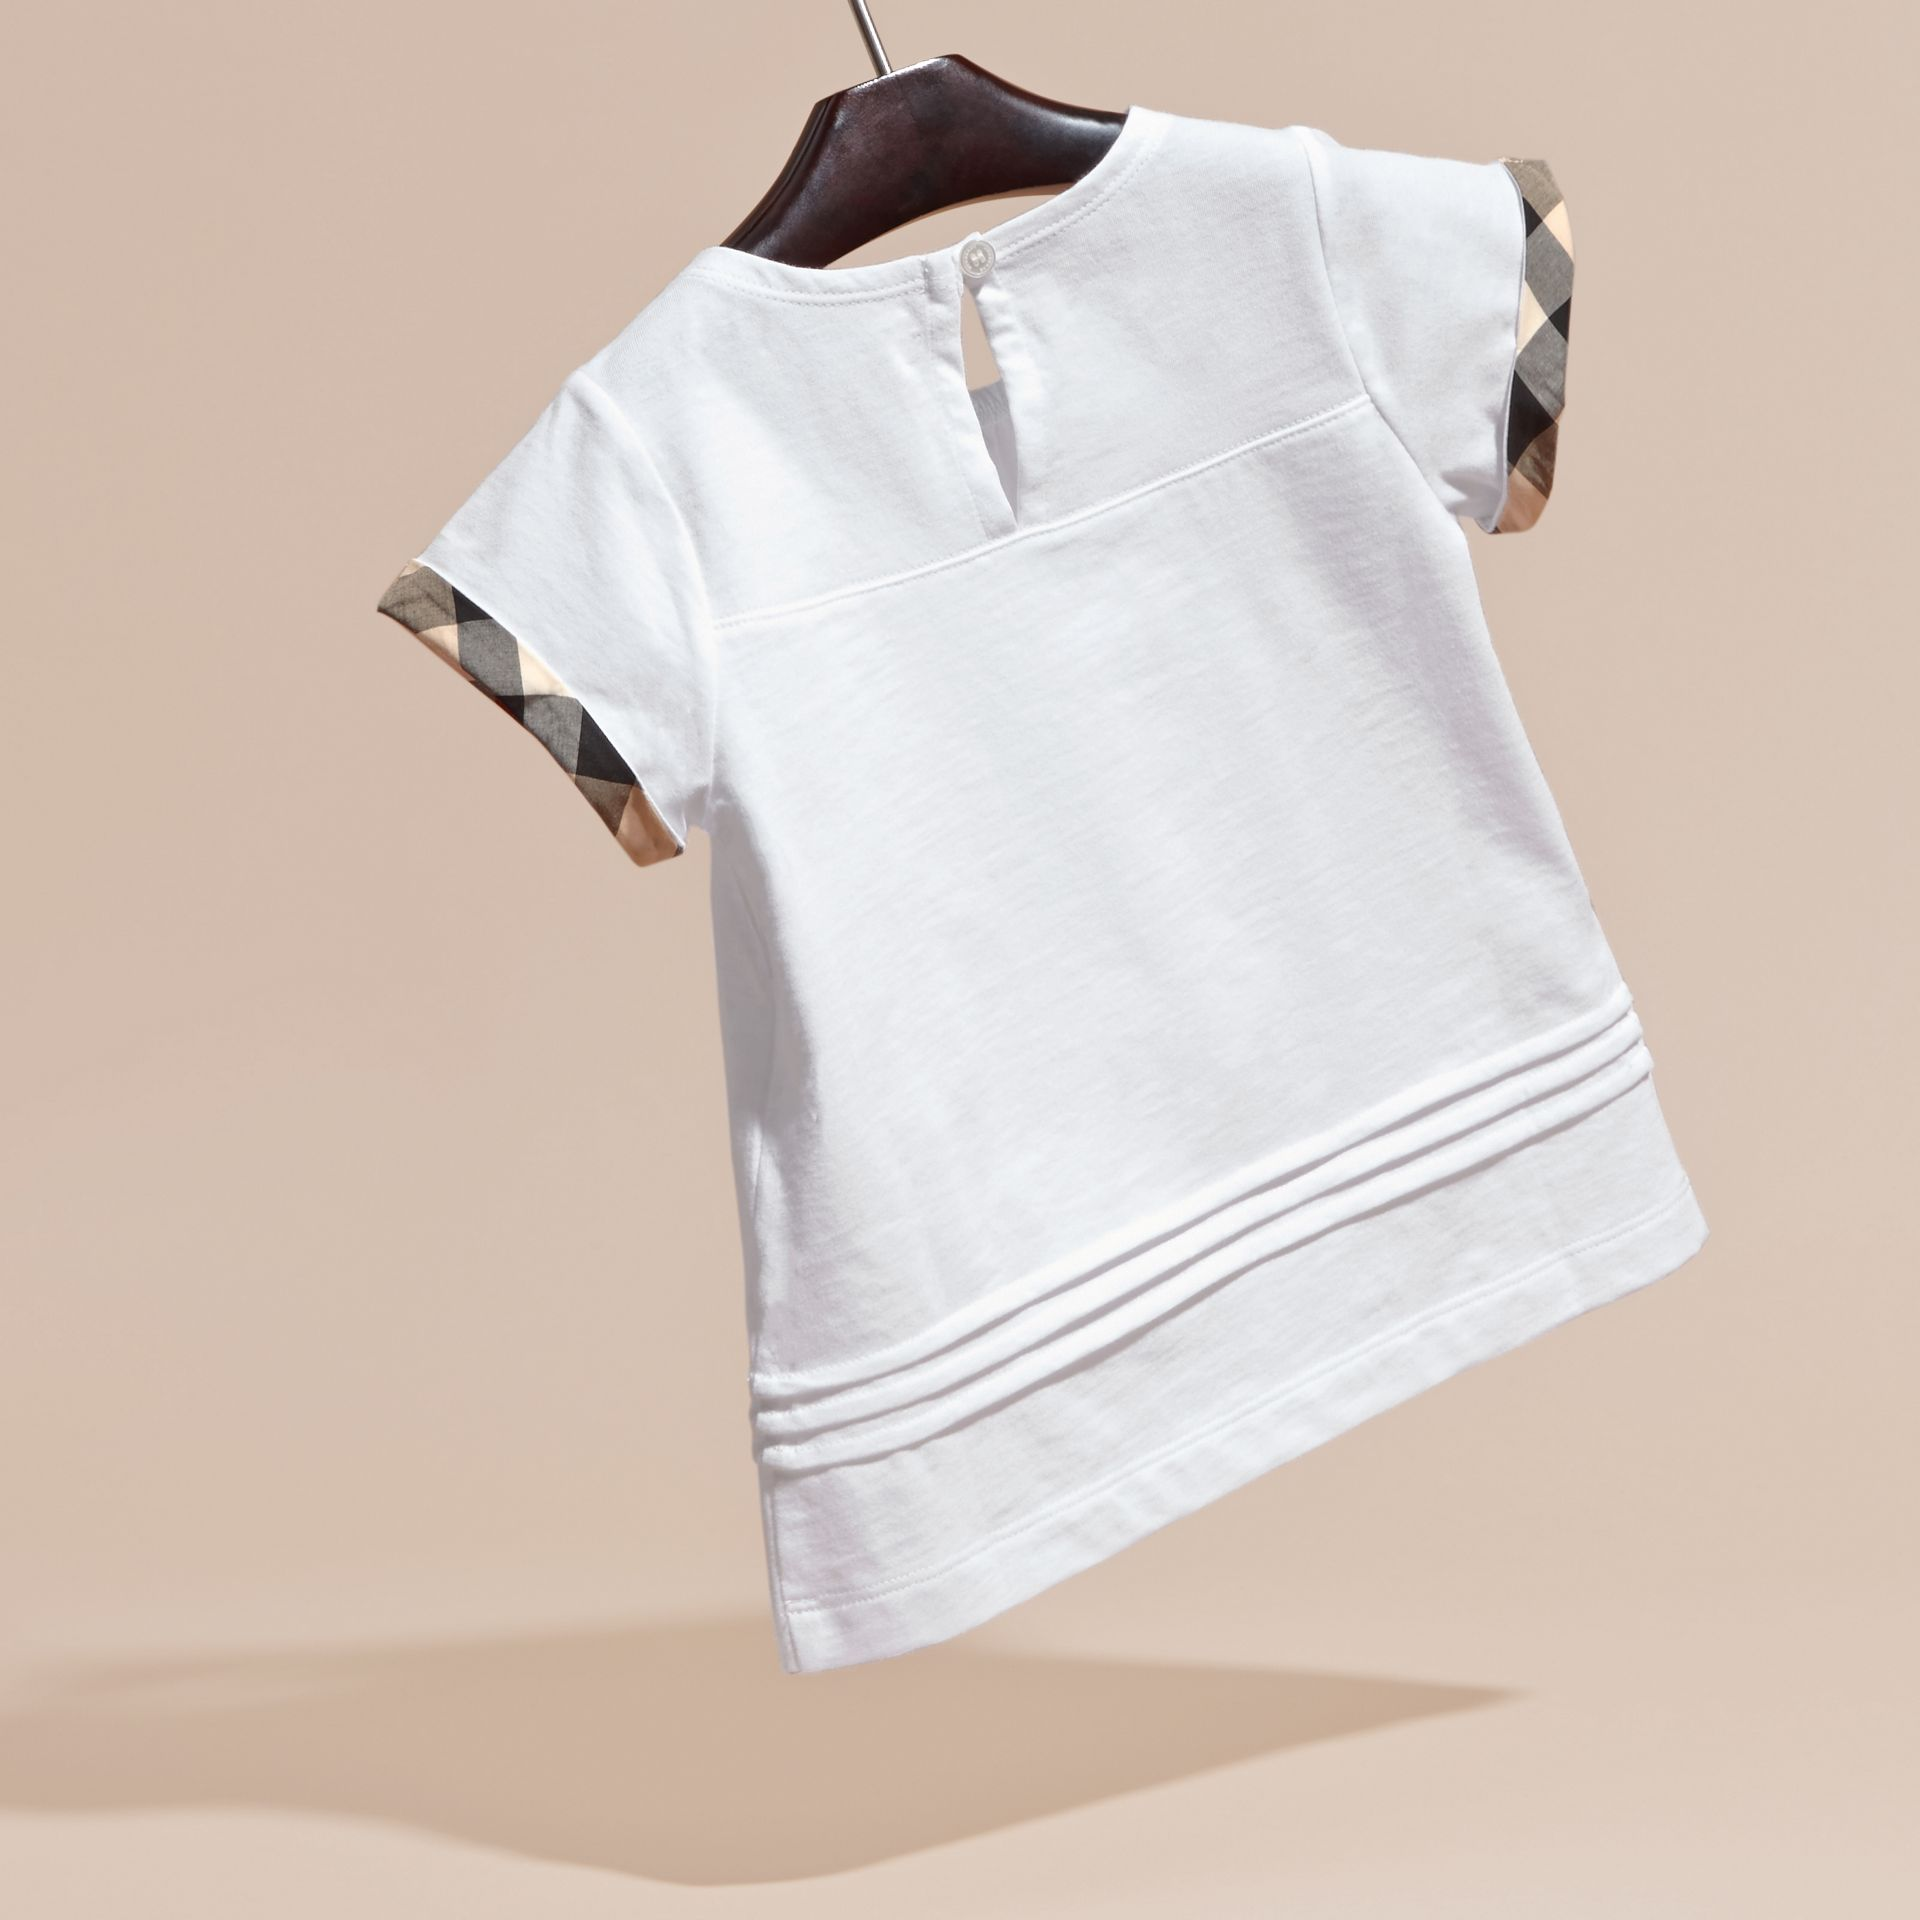 Pleat and Check Detail Cotton T-shirt White - gallery image 4